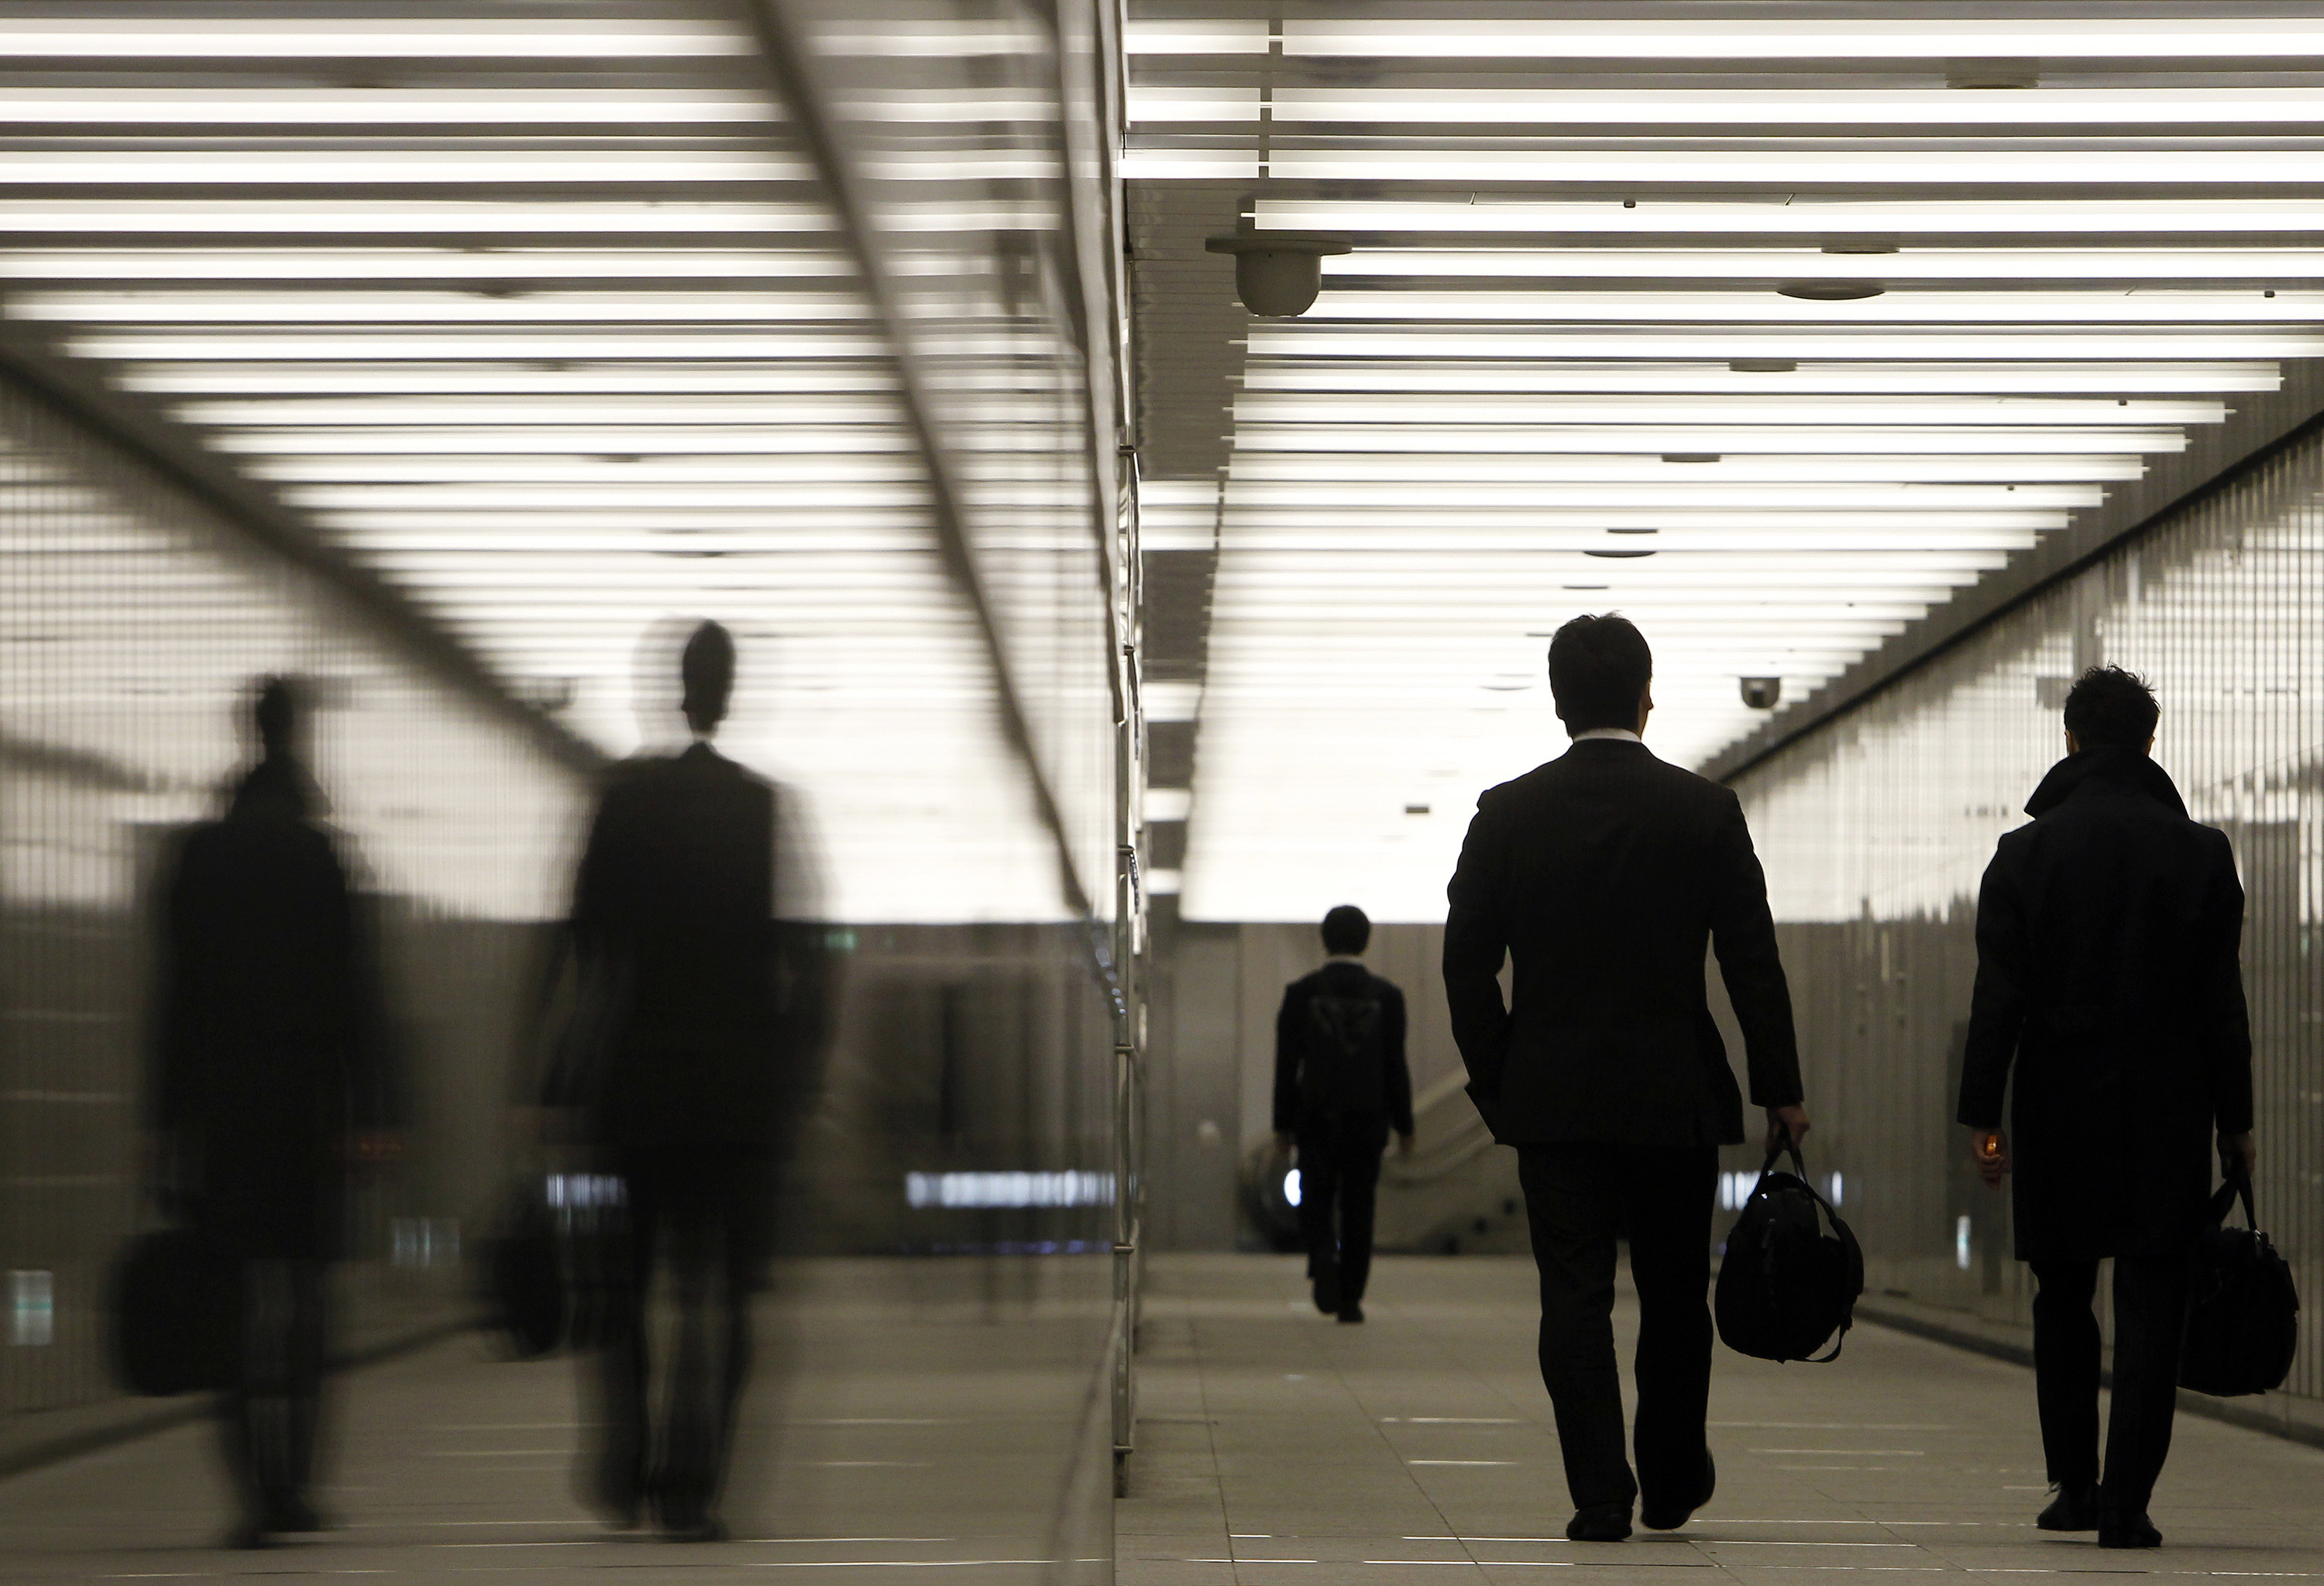 Businessmen walk through a business complex in Tokyo January 11, 2011. Japan's index of coincident economic indicators rose a preliminary 1.4 points in November from the previous month, the Cabinet Office said on Tuesday, up for the first time in three months. REUTERS/Yuriko Nakao (JAPAN - Tags: EMPLOYMENT BUSINESS POLITICS IMAGES OF THE DAY) - GM1E71B1CN001